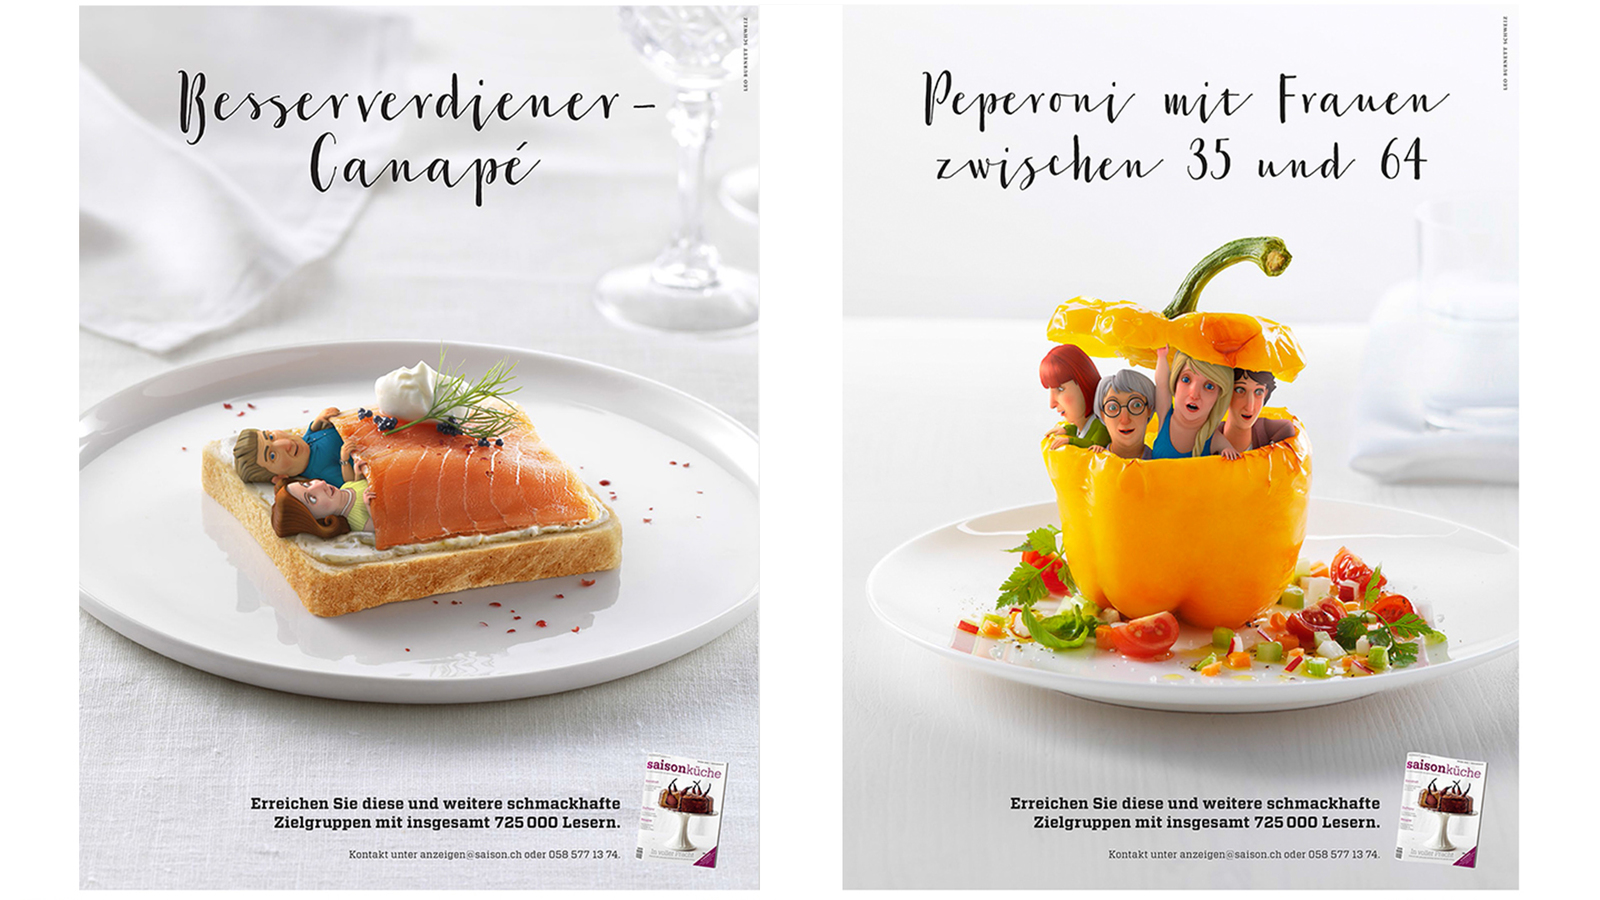 2 of the final images on magazine layout for Saison Kuche